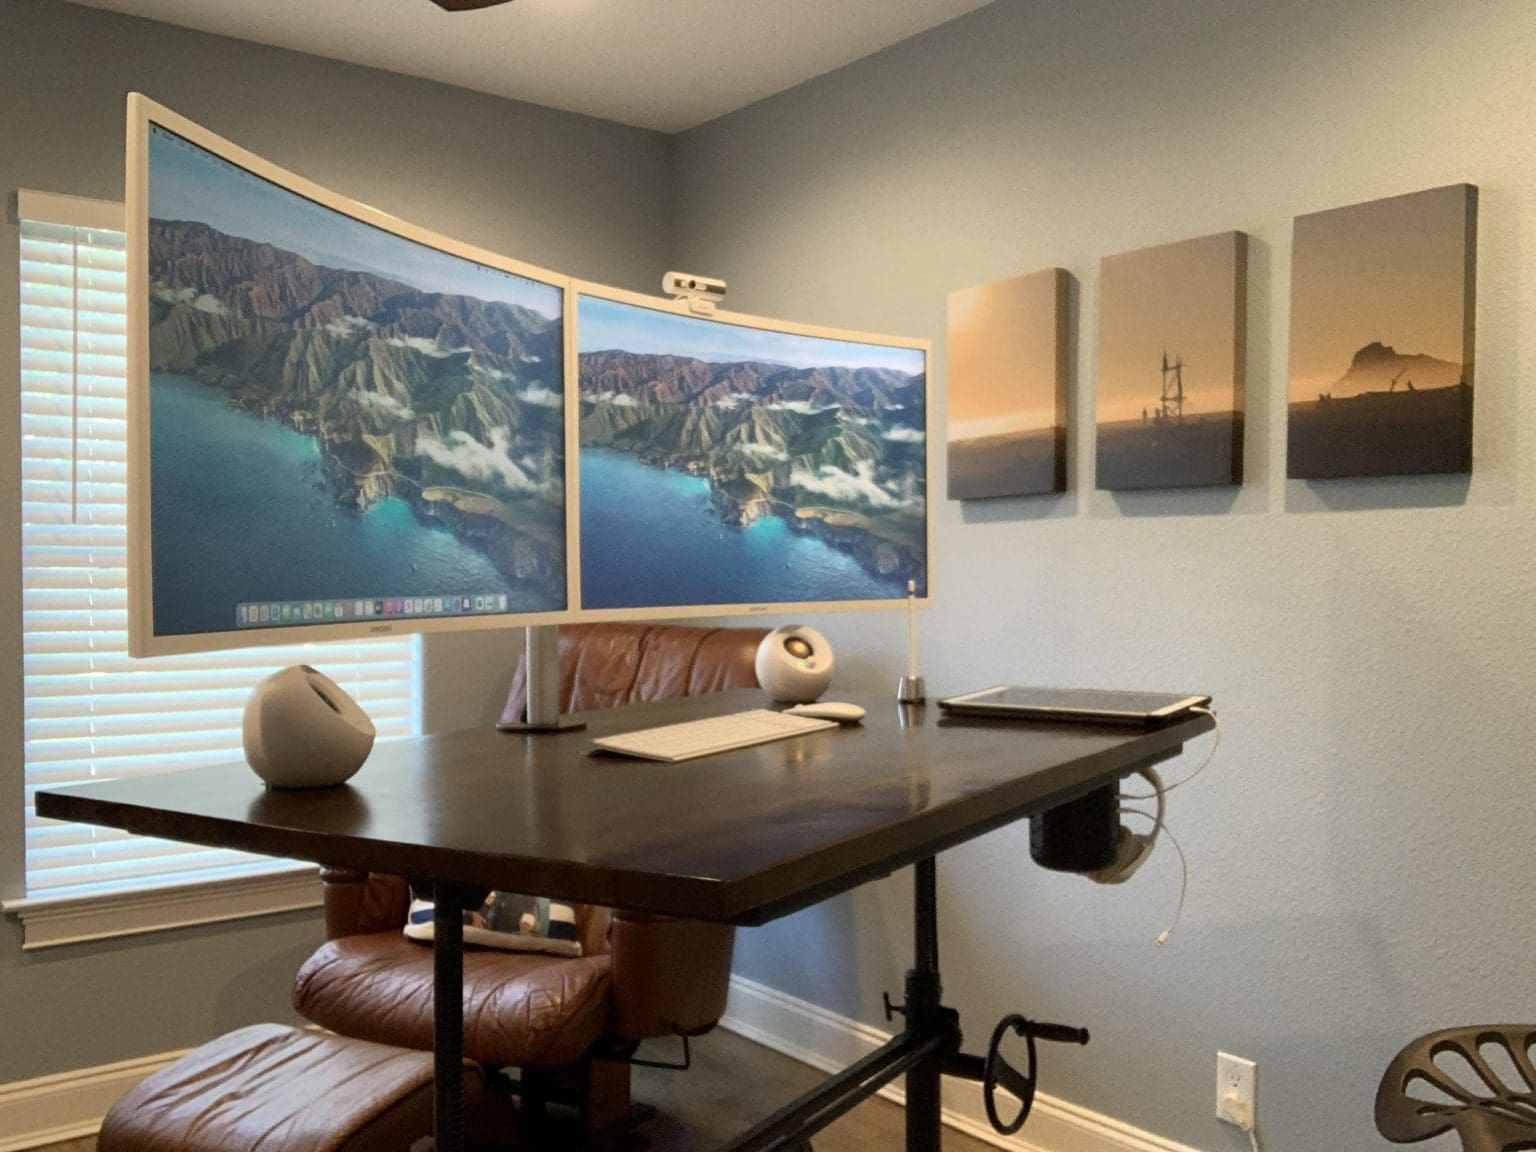 Chris Reed's dual-monitor M1 MacBook Pro setup was a long time in the making.